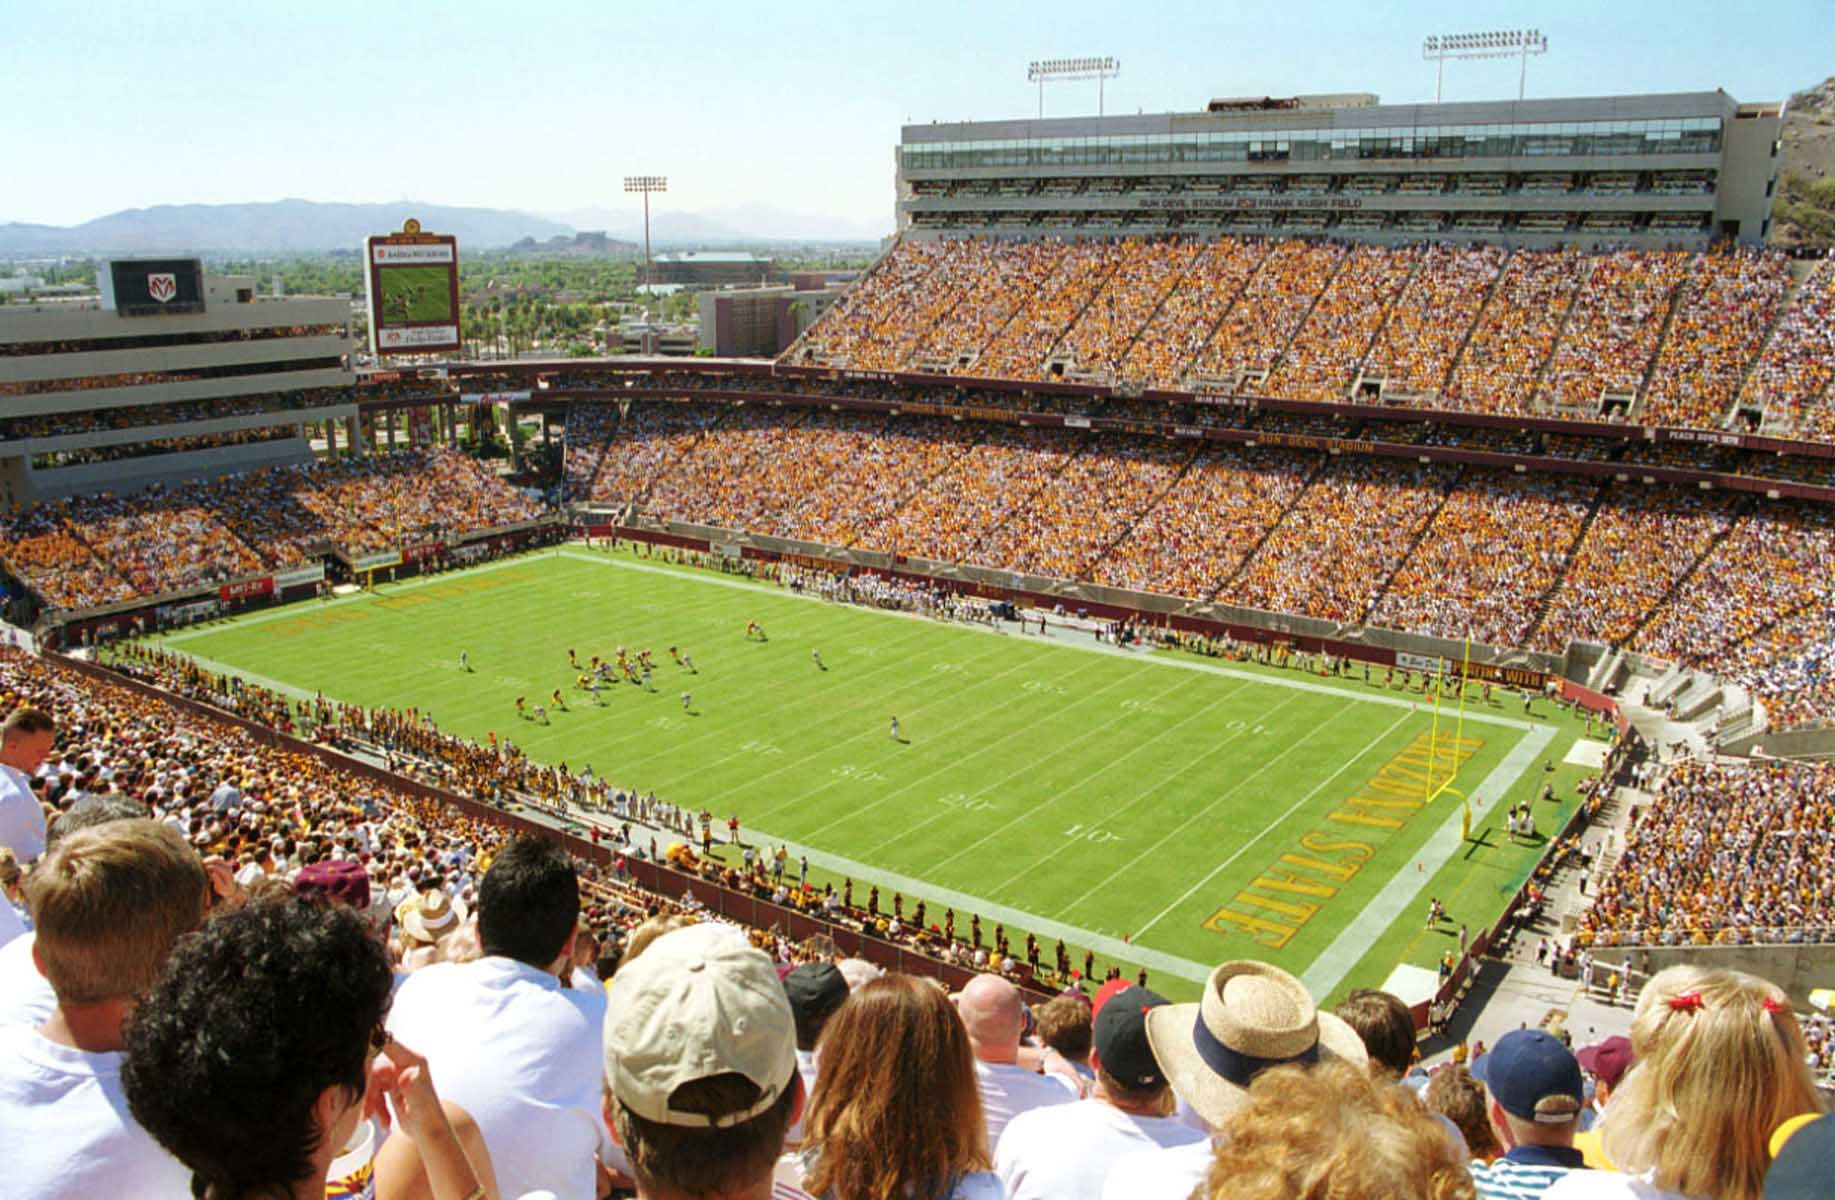 View of the playing field at Sun Devil Stadium, former home of the Arizona Cardinals